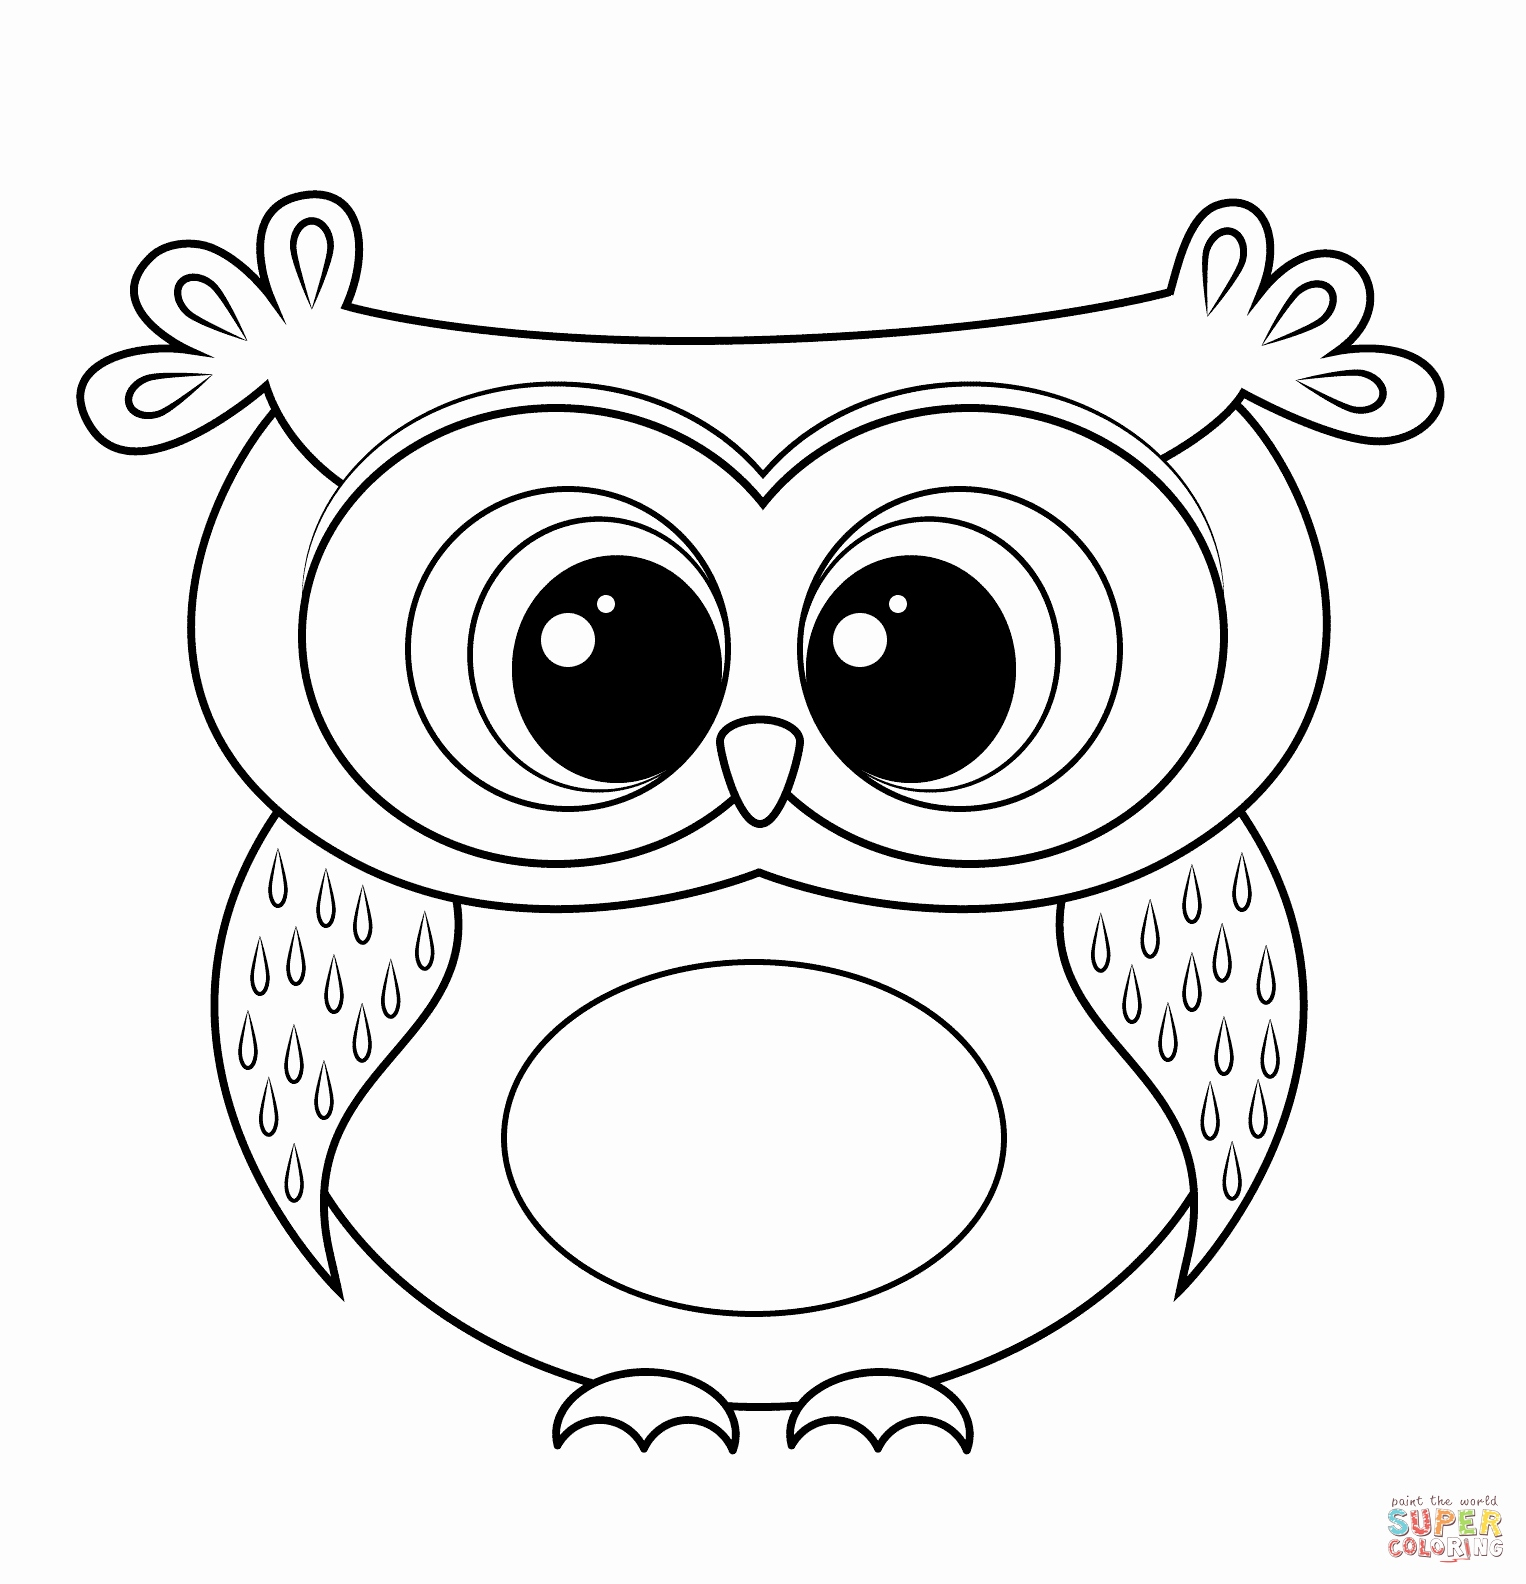 1526x1584 Printable Halloween Coloring Pages New Cartoon Owl Coloring Page